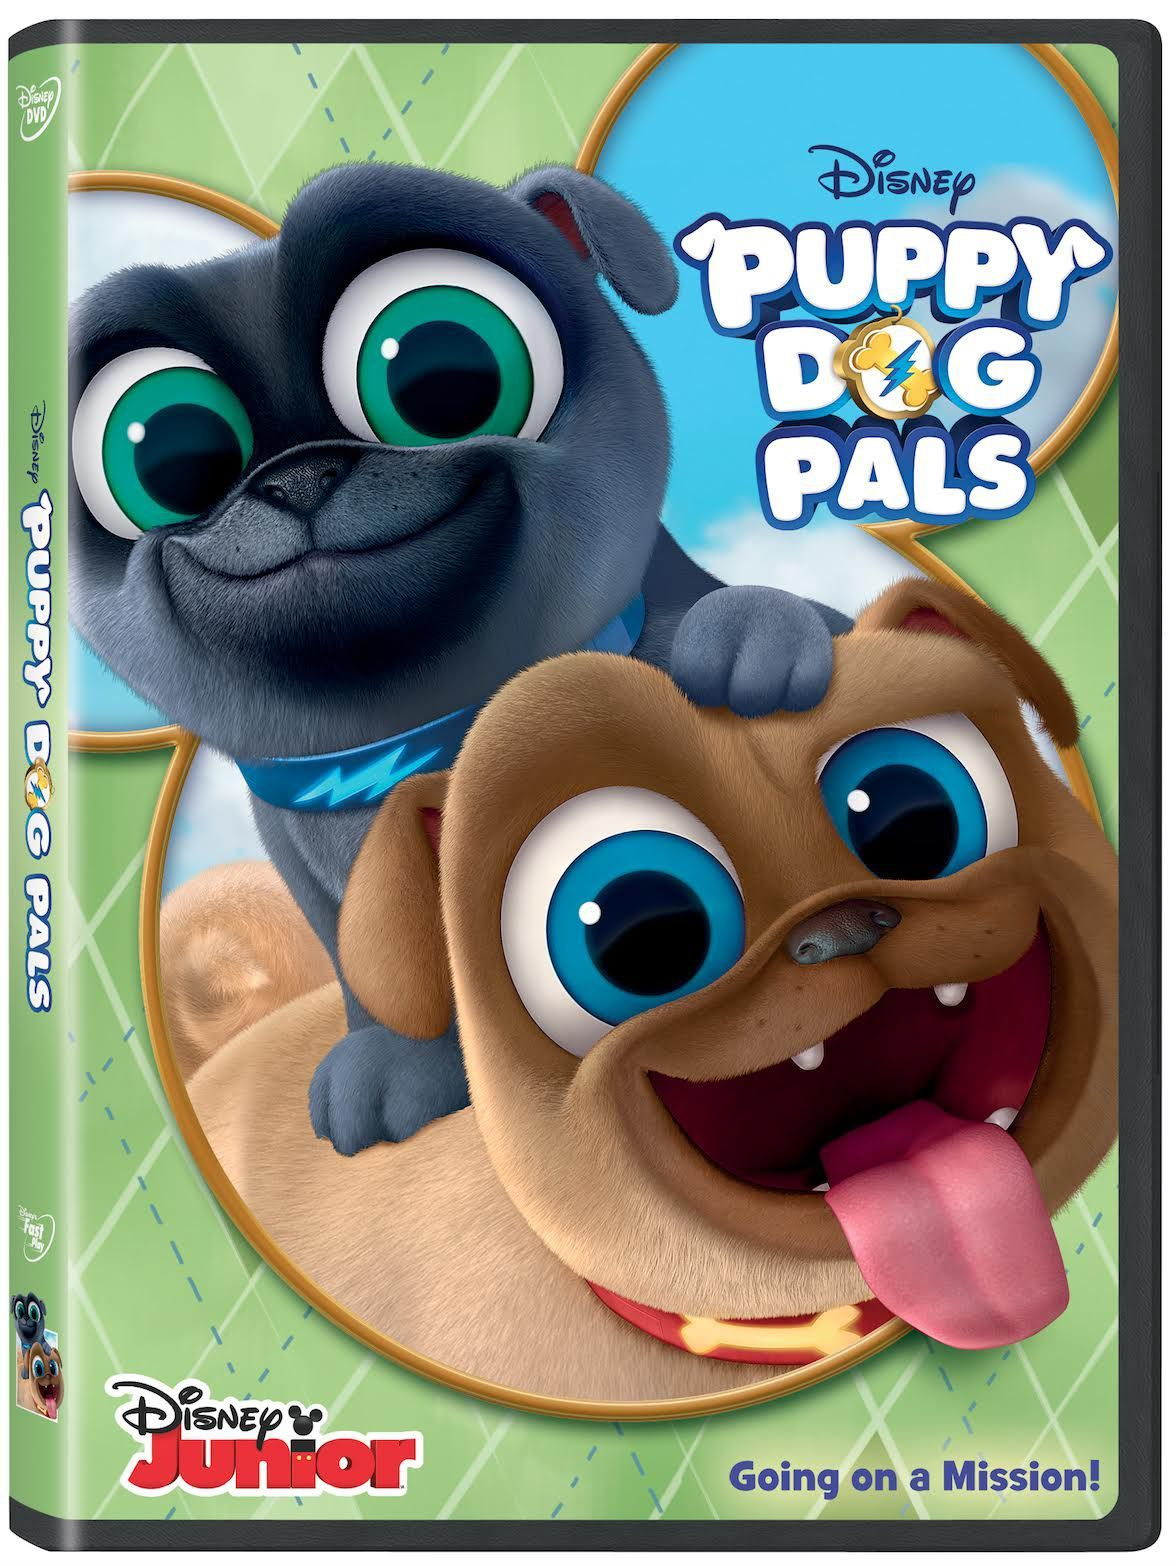 Puppy Dog Pals Is Adorably Paw Some Skgaleana Free Puppies Puppies Dogs And Puppies [ 1566 x 1176 Pixel ]